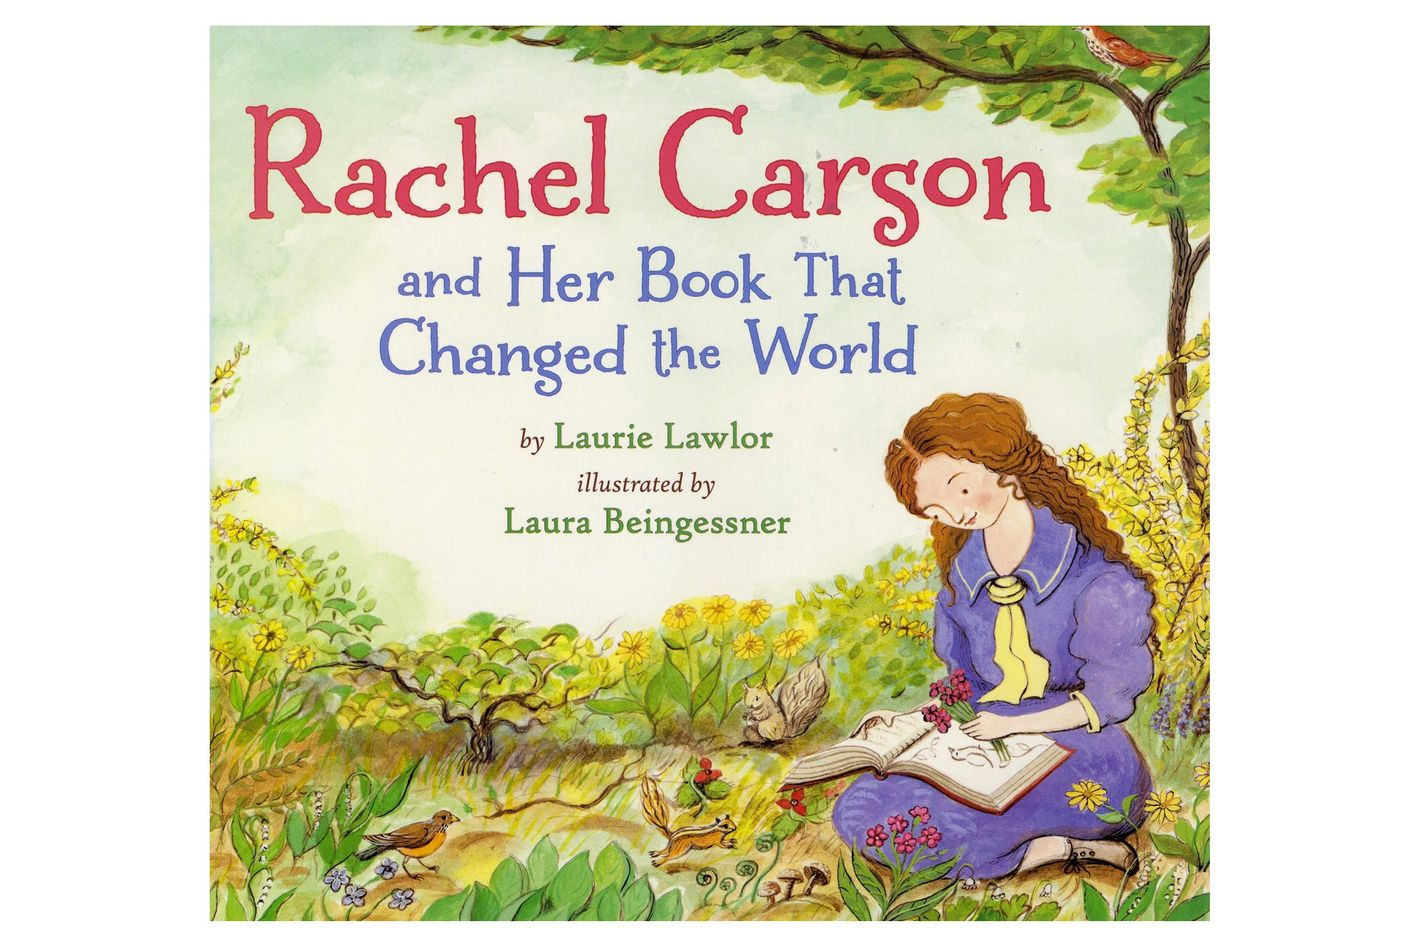 """Rachel Carson and Her Book That Changed the World,"" by Laurie Lawlor"